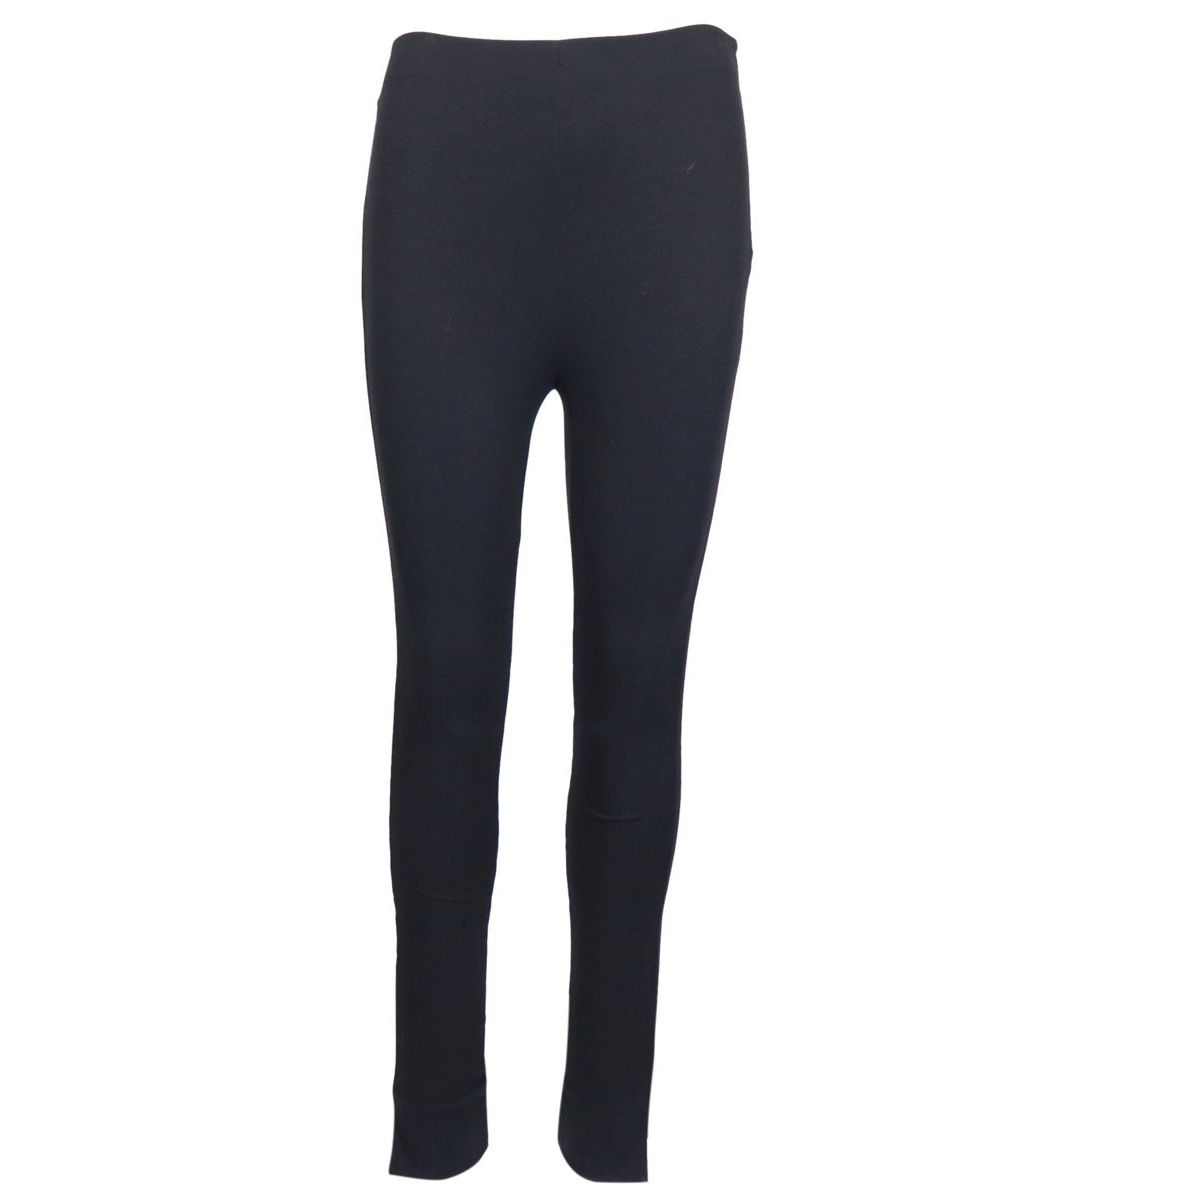 High-waisted viscose blend skinny trousers with slits on the bottom Black Patrizia Pepe